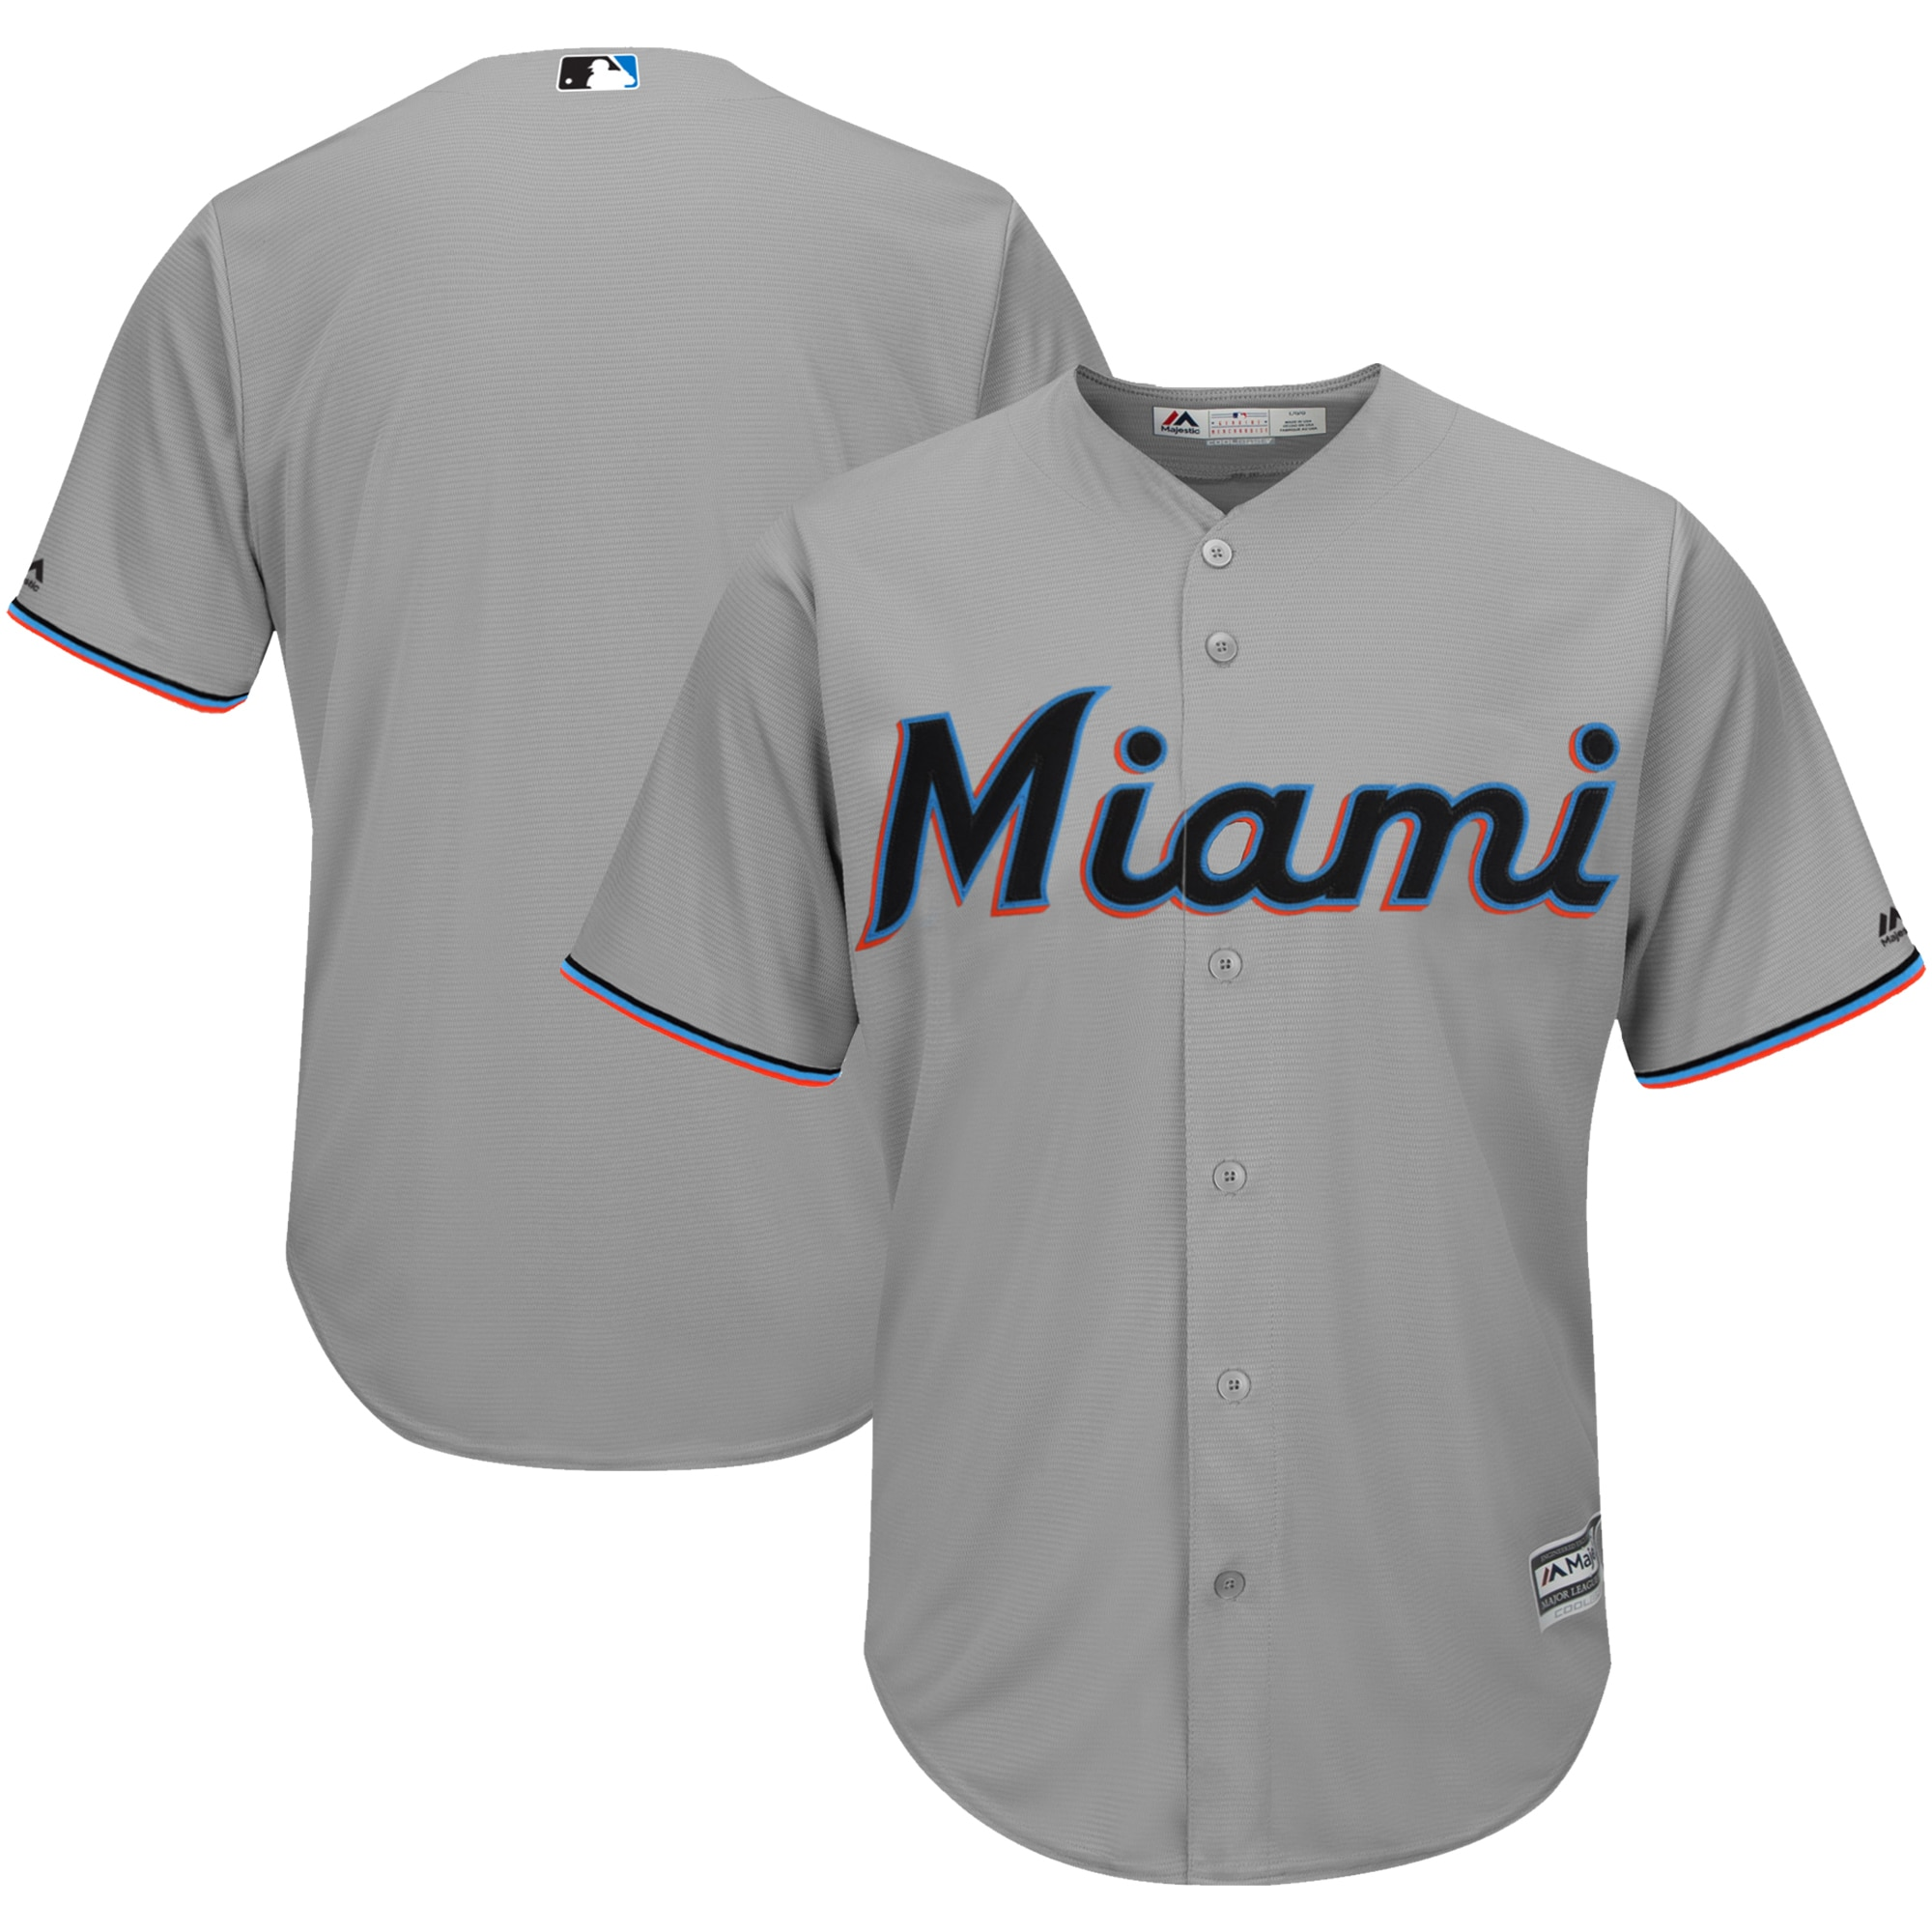 Miami Marlins Majestic 2019 Official Cool Base Jersey - Gray